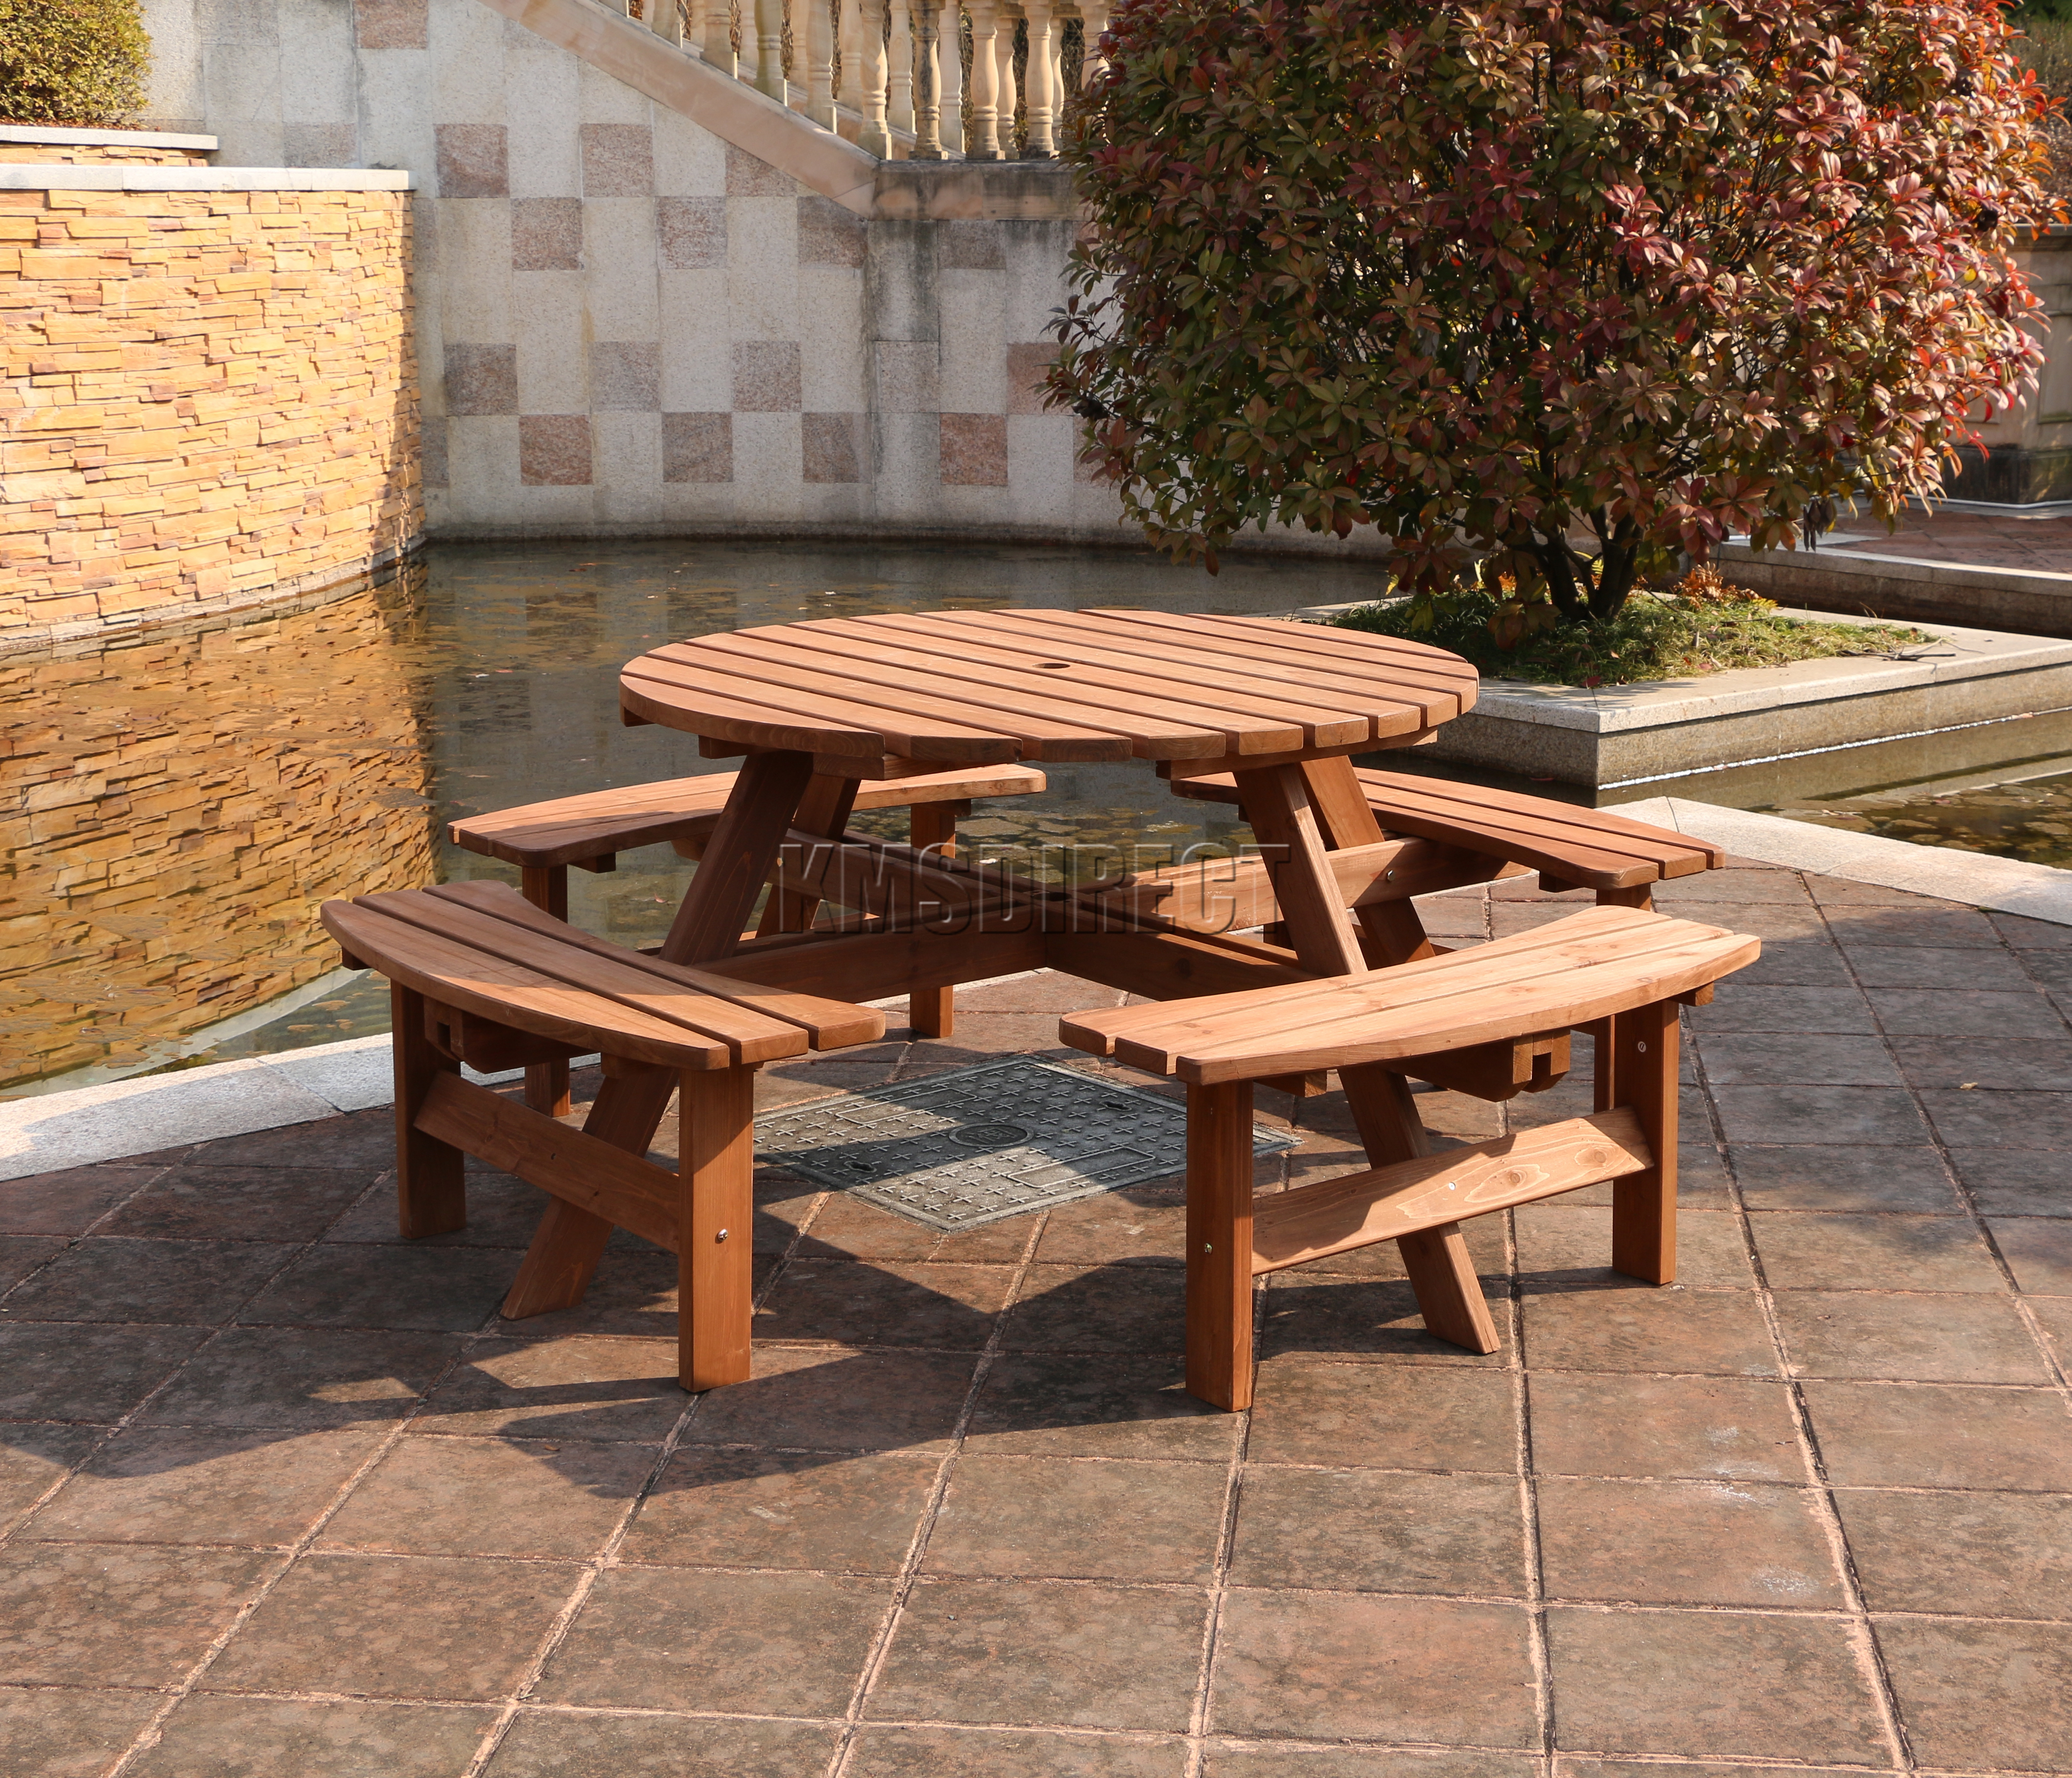 Westwood 8 seater wooden pub bench round picnic table furniture sentinel westwood 8 seater wooden pub bench round picnic table furniture garden patio watchthetrailerfo